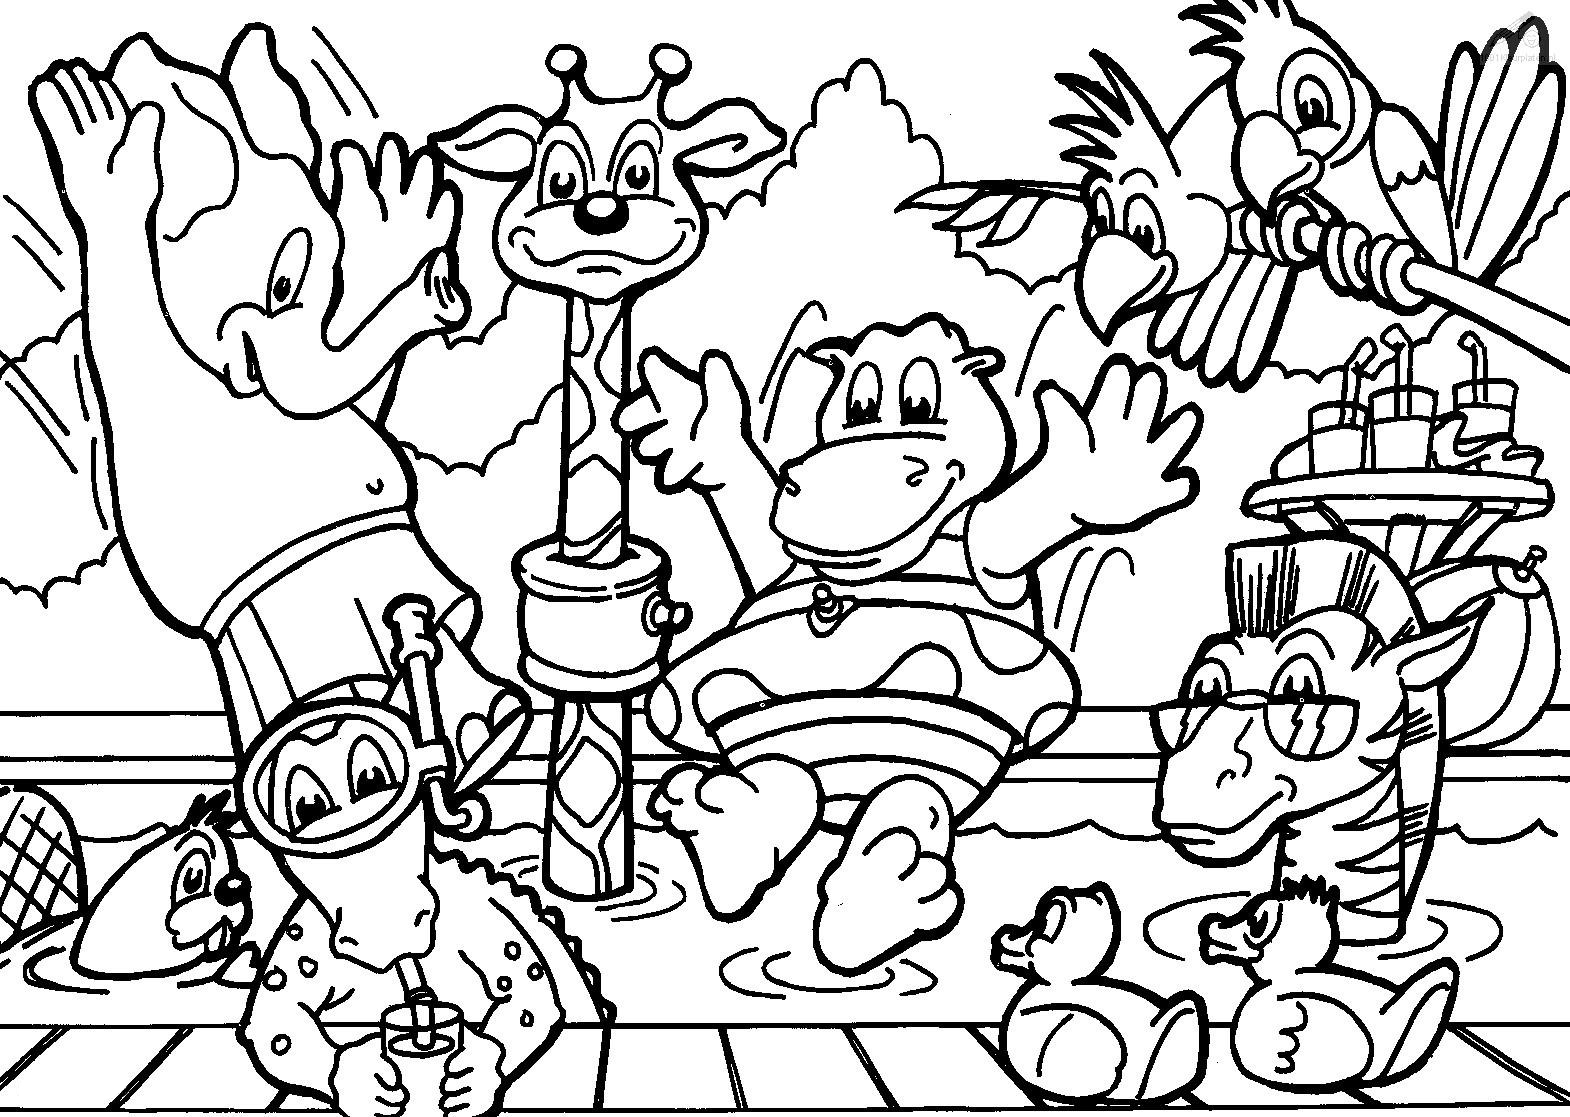 wild animals free coloring pages | Wild Animal Coloring Pages - Best Coloring Pages For Kids